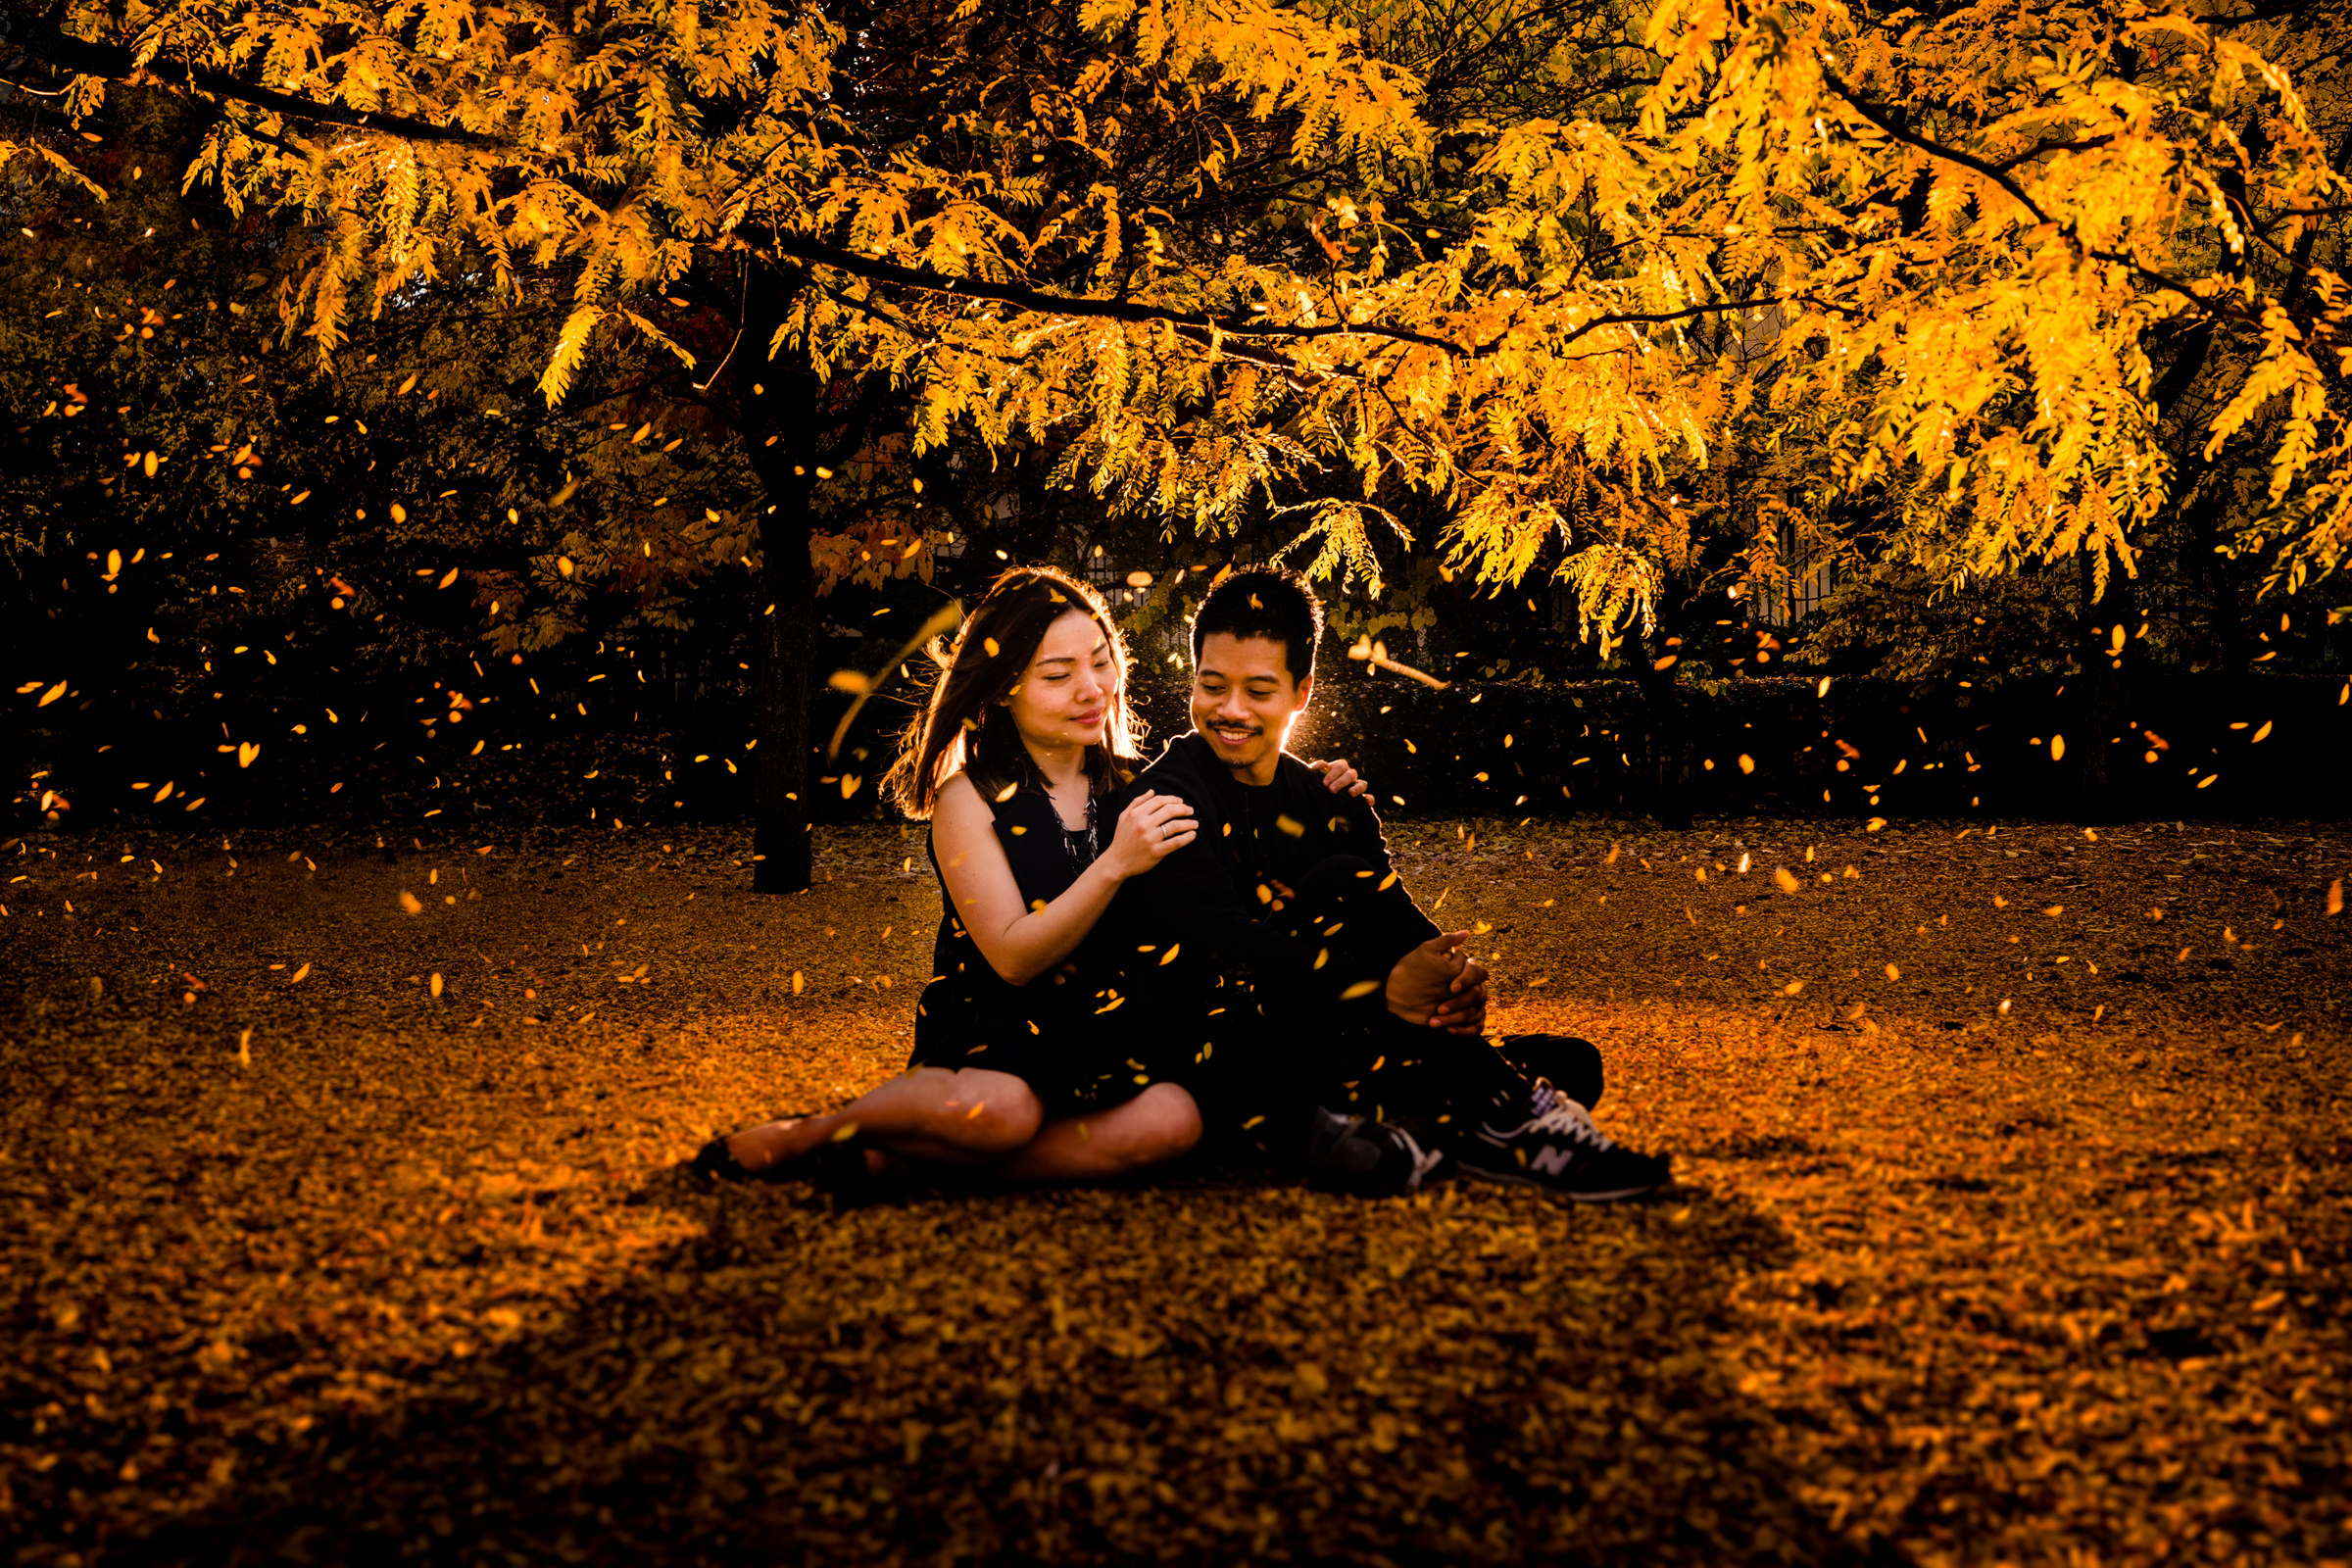 Autumn engagement couple seated on ground among fallen leaves - photo by Vinson Images